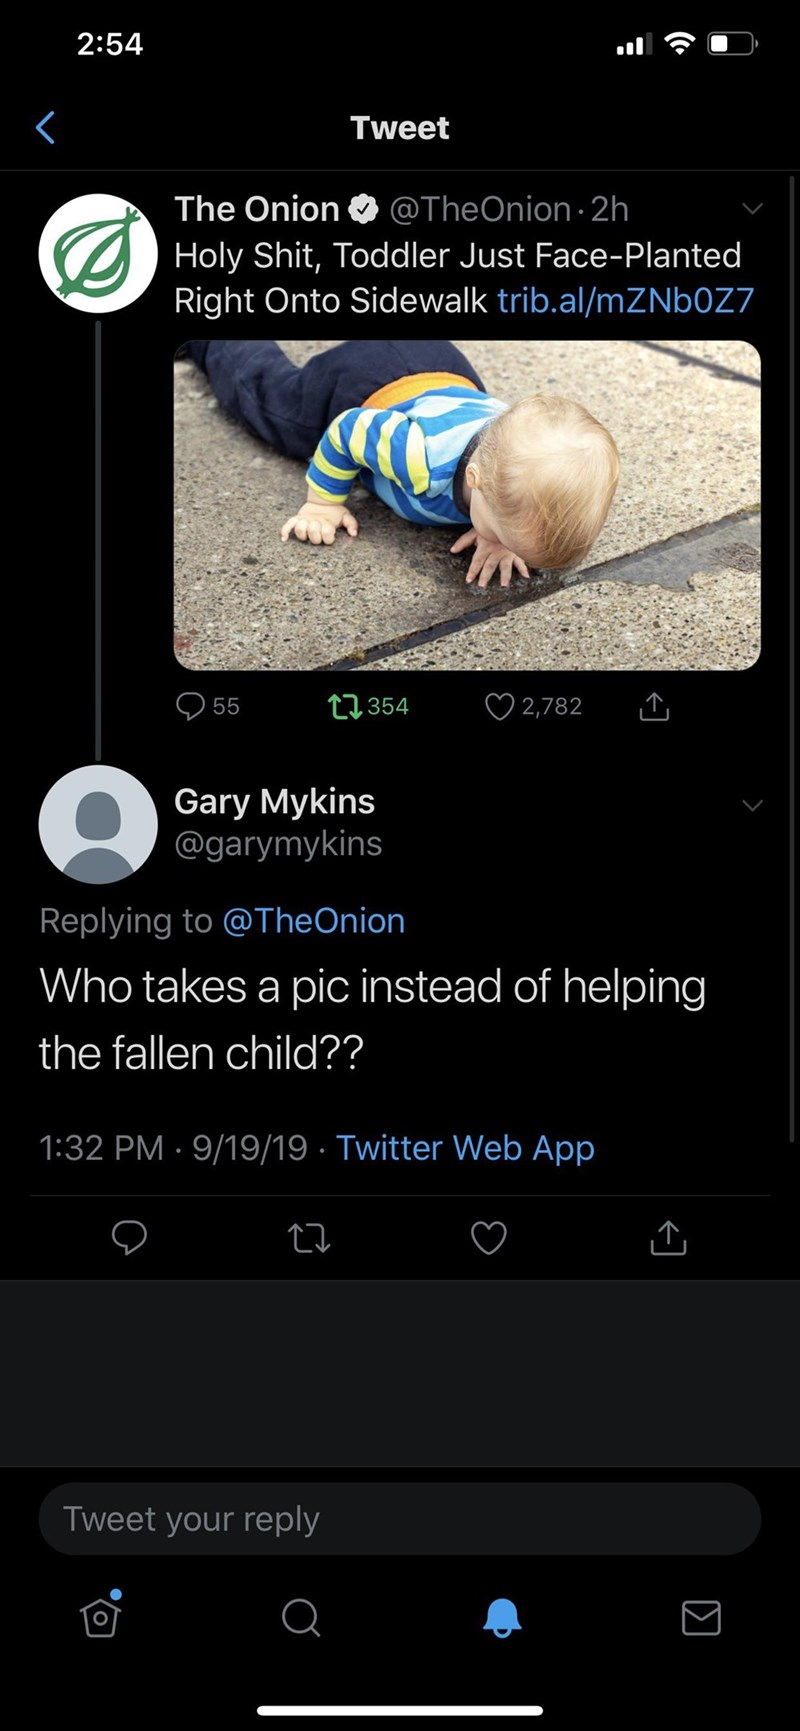 Text - 2:54 Tweet The Onion @TheOnion 2h Holy Shit, Toddler Just Face-Planted Right Onto Sidewalk trib.al/mZNb0Z7 2,782 tl354 55 Gary Mykins @garymykins Replying to @TheOnion Who takes a pic instead of helping the fallen child?? 1:32 PM 9/19/19 Twitter Web App Tweet your reply